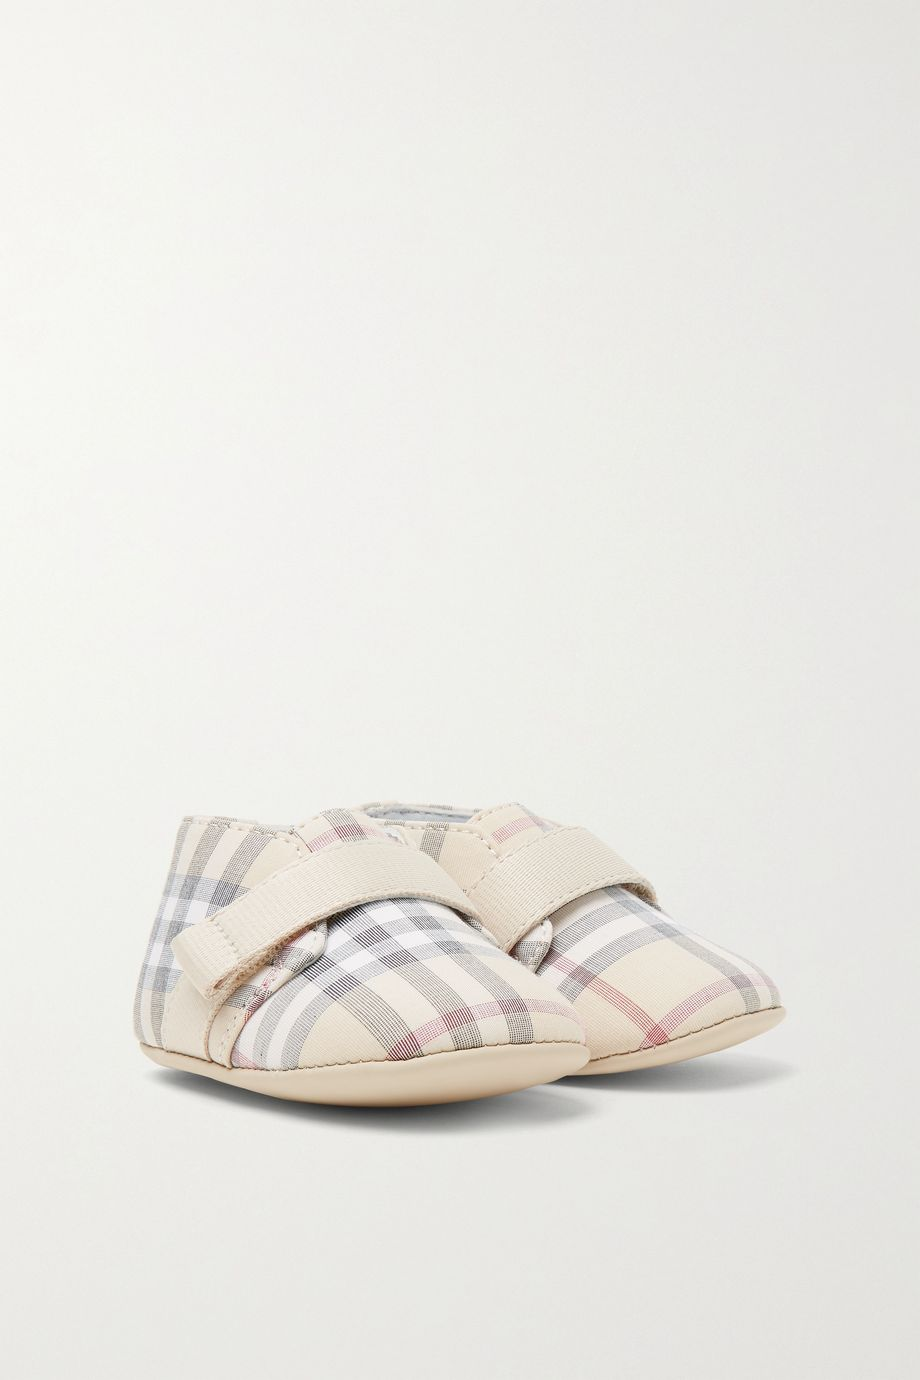 Burberry Kids Sizes 15 - 19 checked cotton-poplin booties